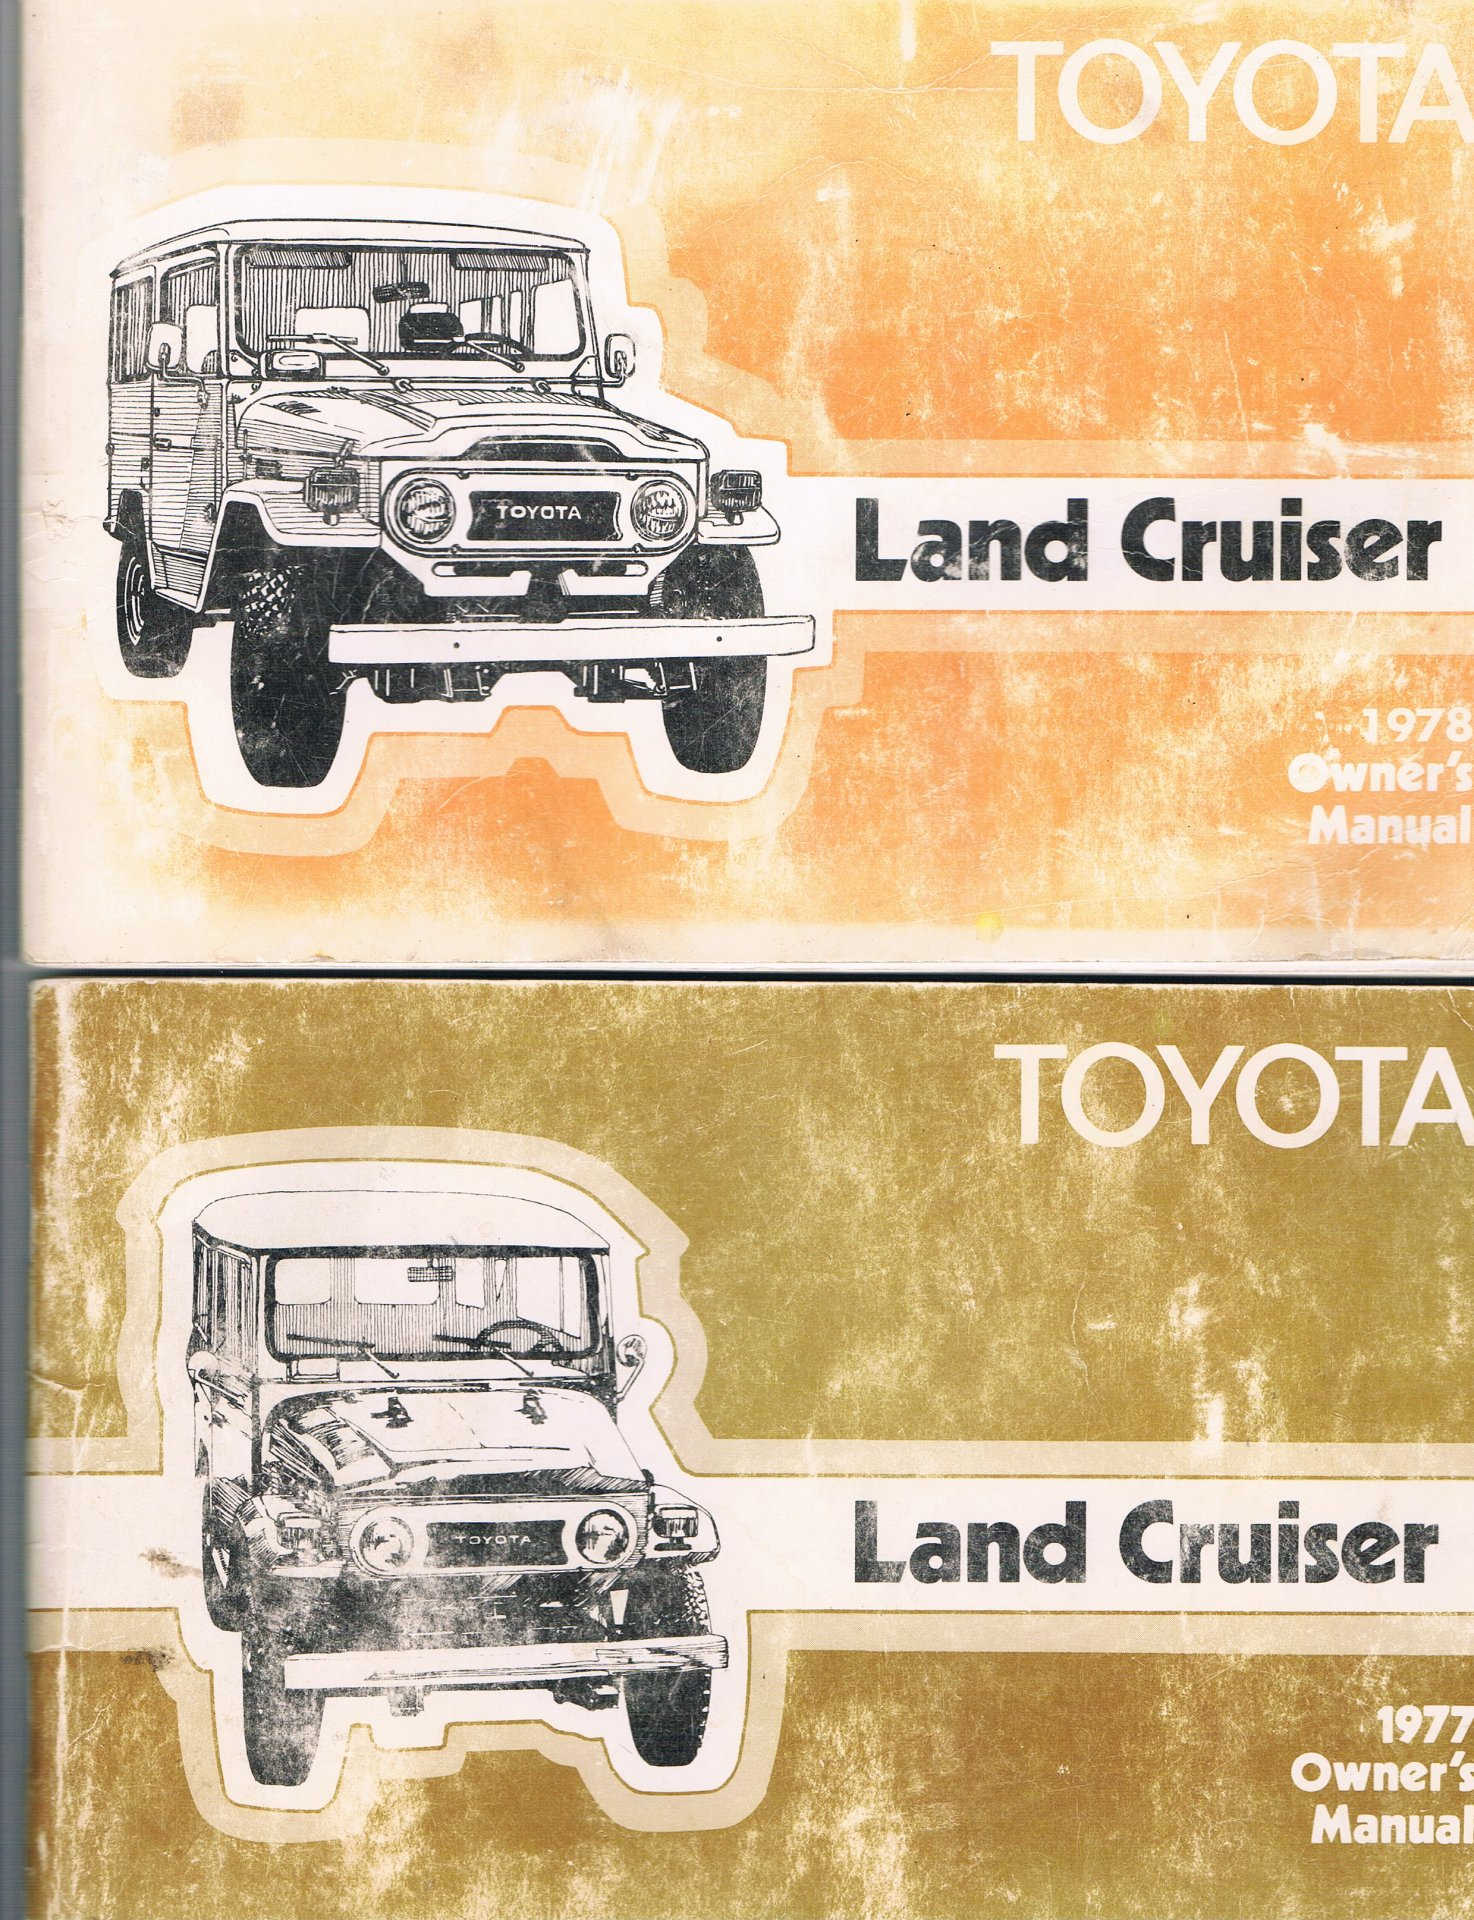 Owners Manual Reference Thread 40 And 55 Series Ih8mud Forum Toyota Land Cruiser 1960 77 Img